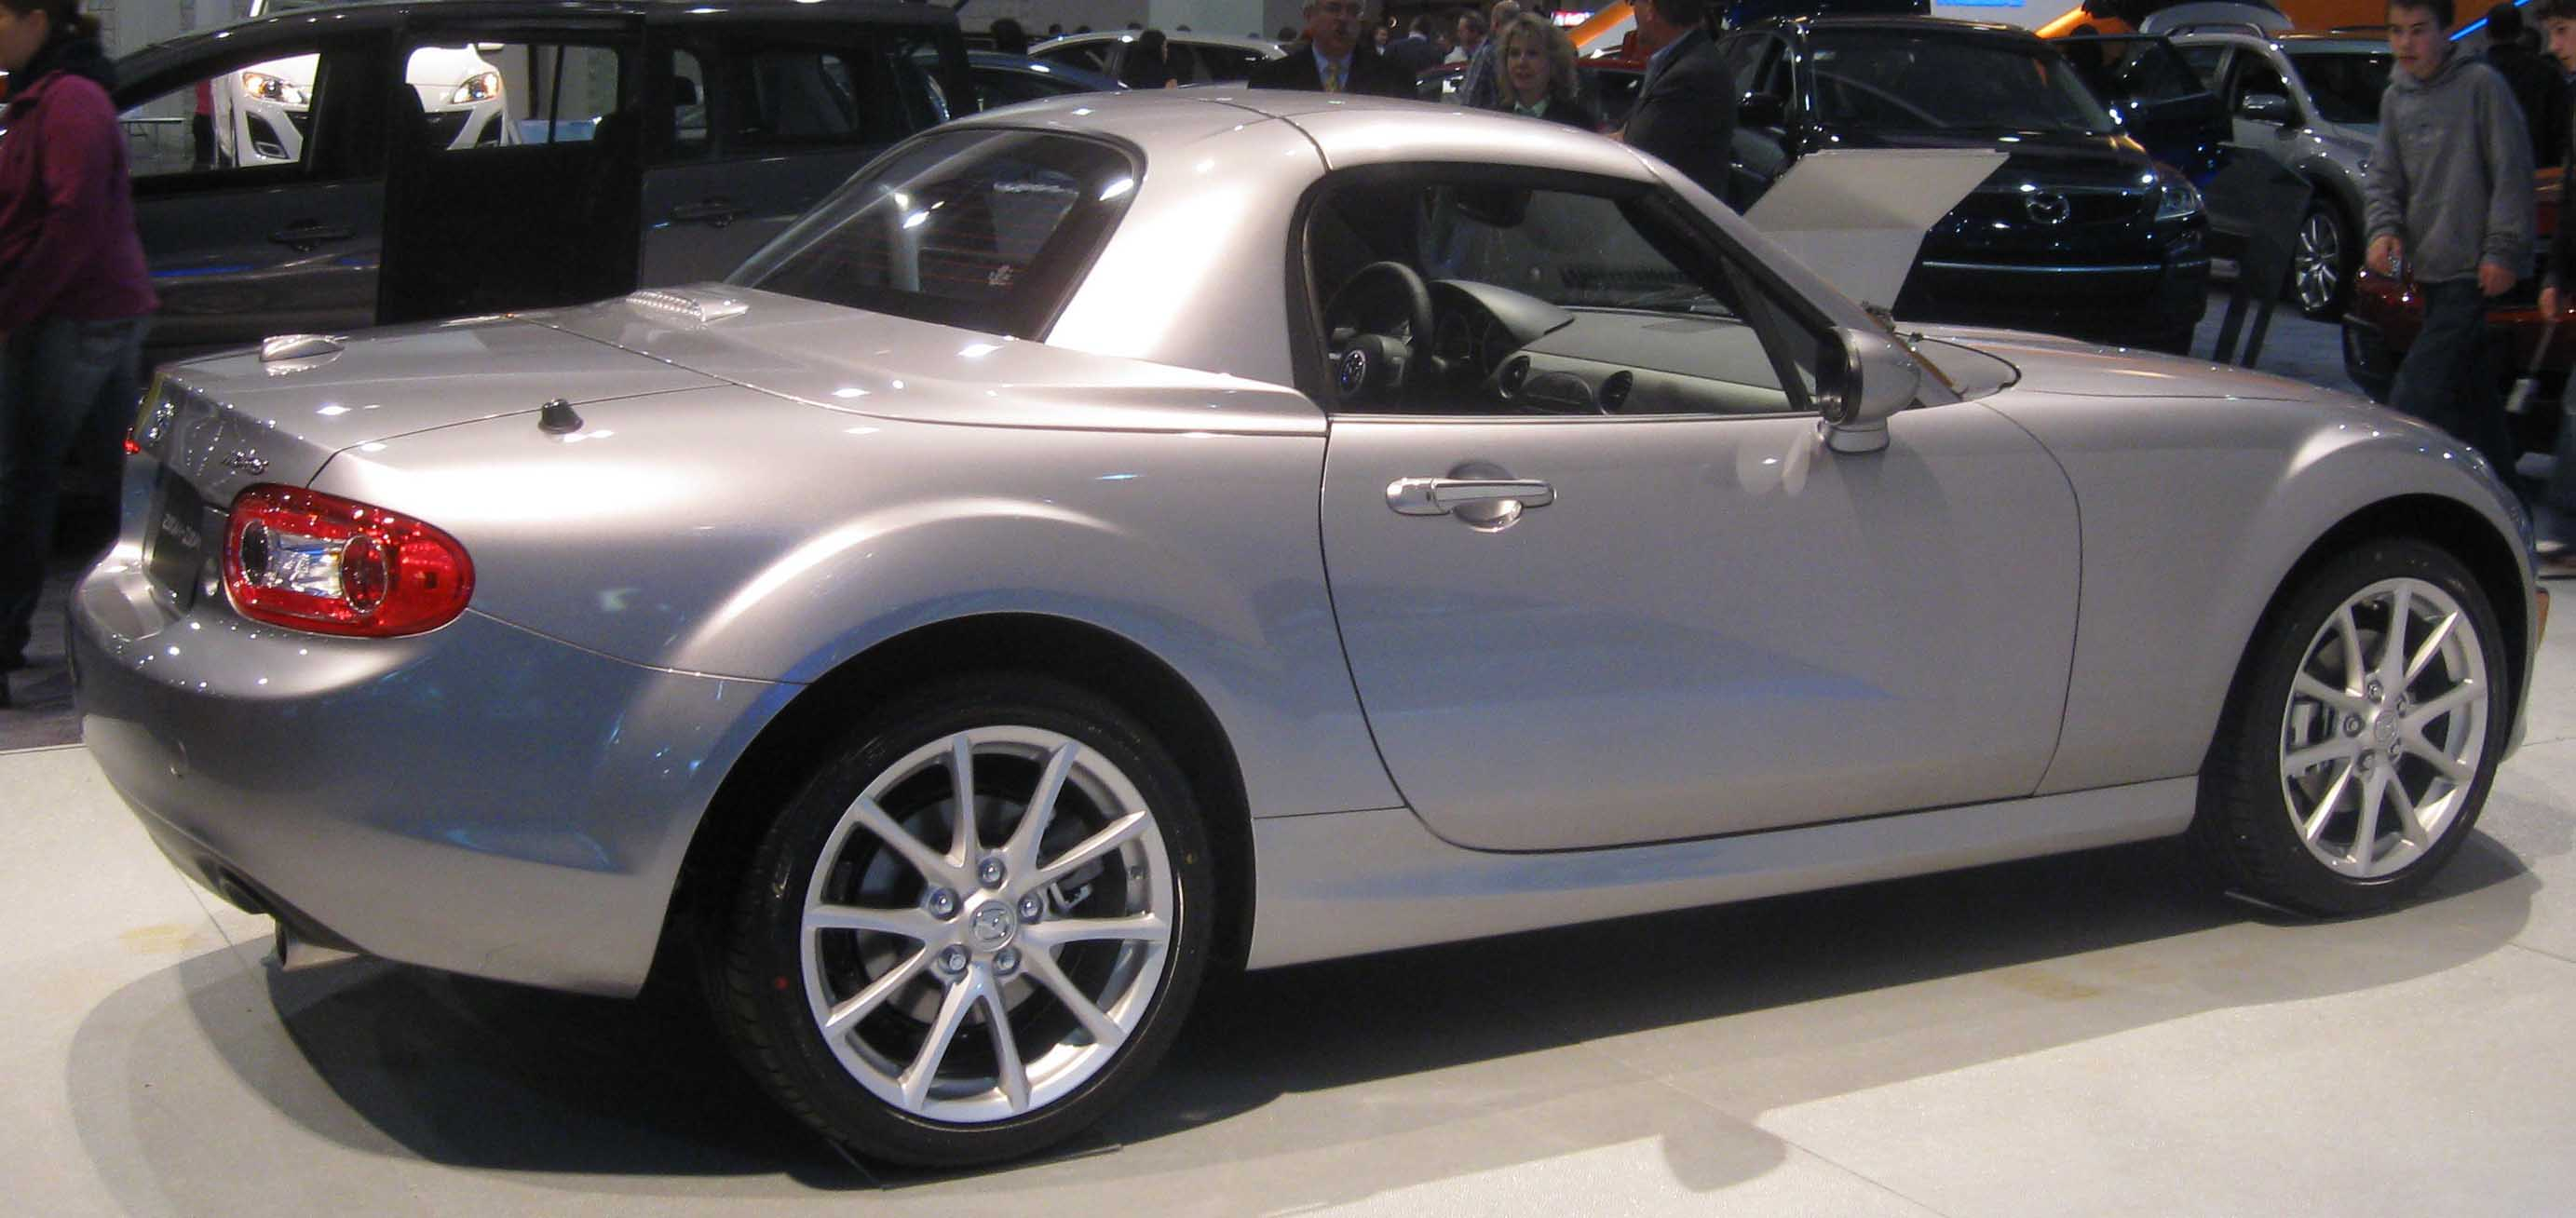 file:2009 mazda mx-5 hardtop--dc - wikimedia commons